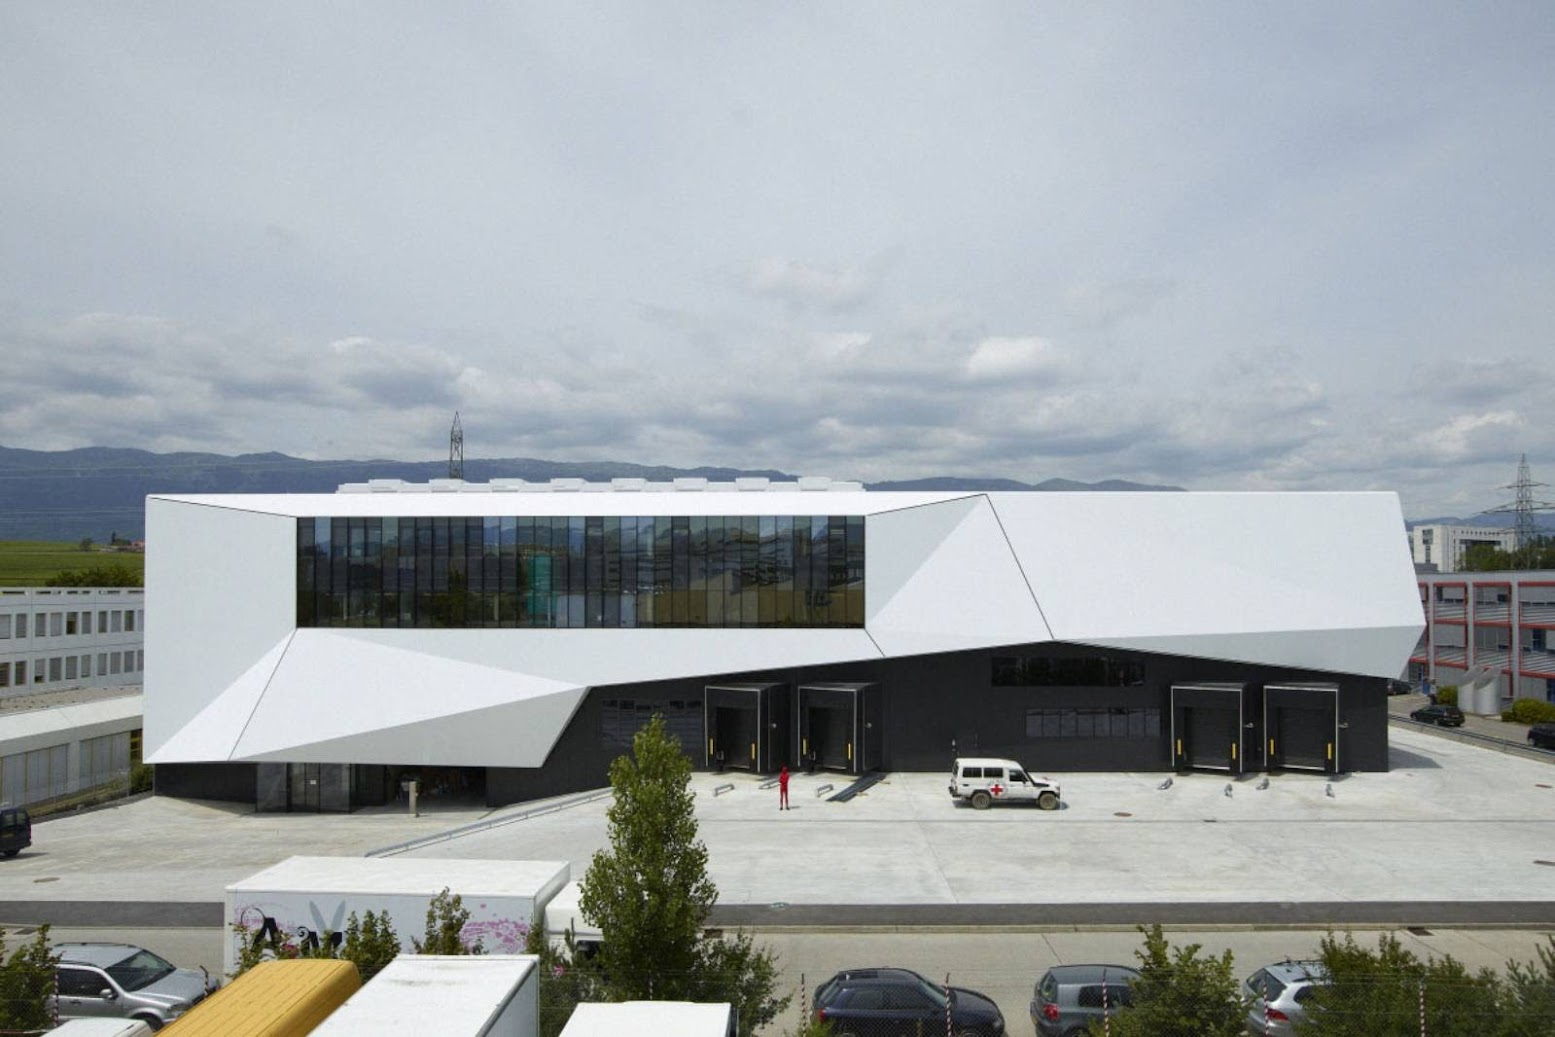 Ginevra, Svizzera: [ICRC LOGISTICS COMPLEX BY GROUP8]